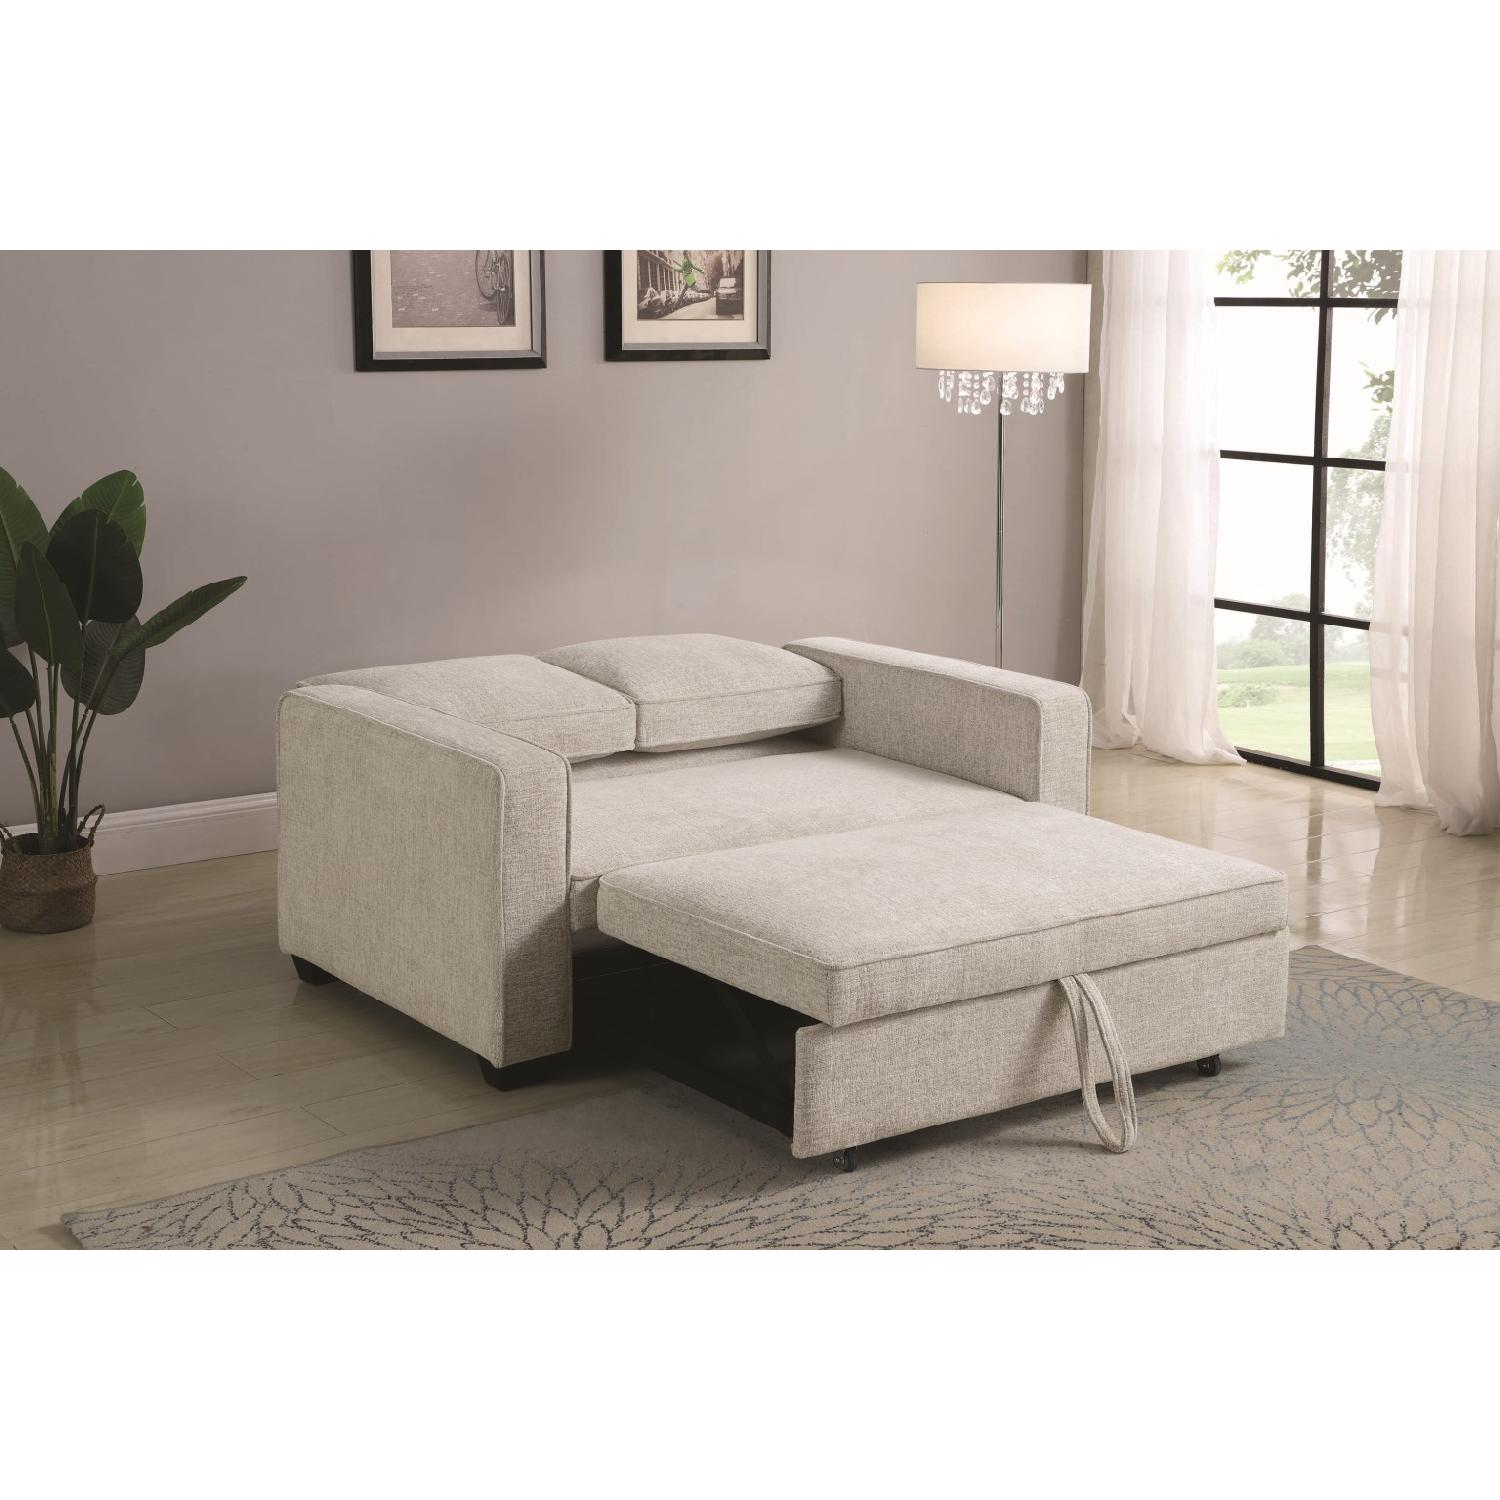 Compact Sofabed in Beige Chenille Fabric w/ Pull-Out Sleeper - image-5